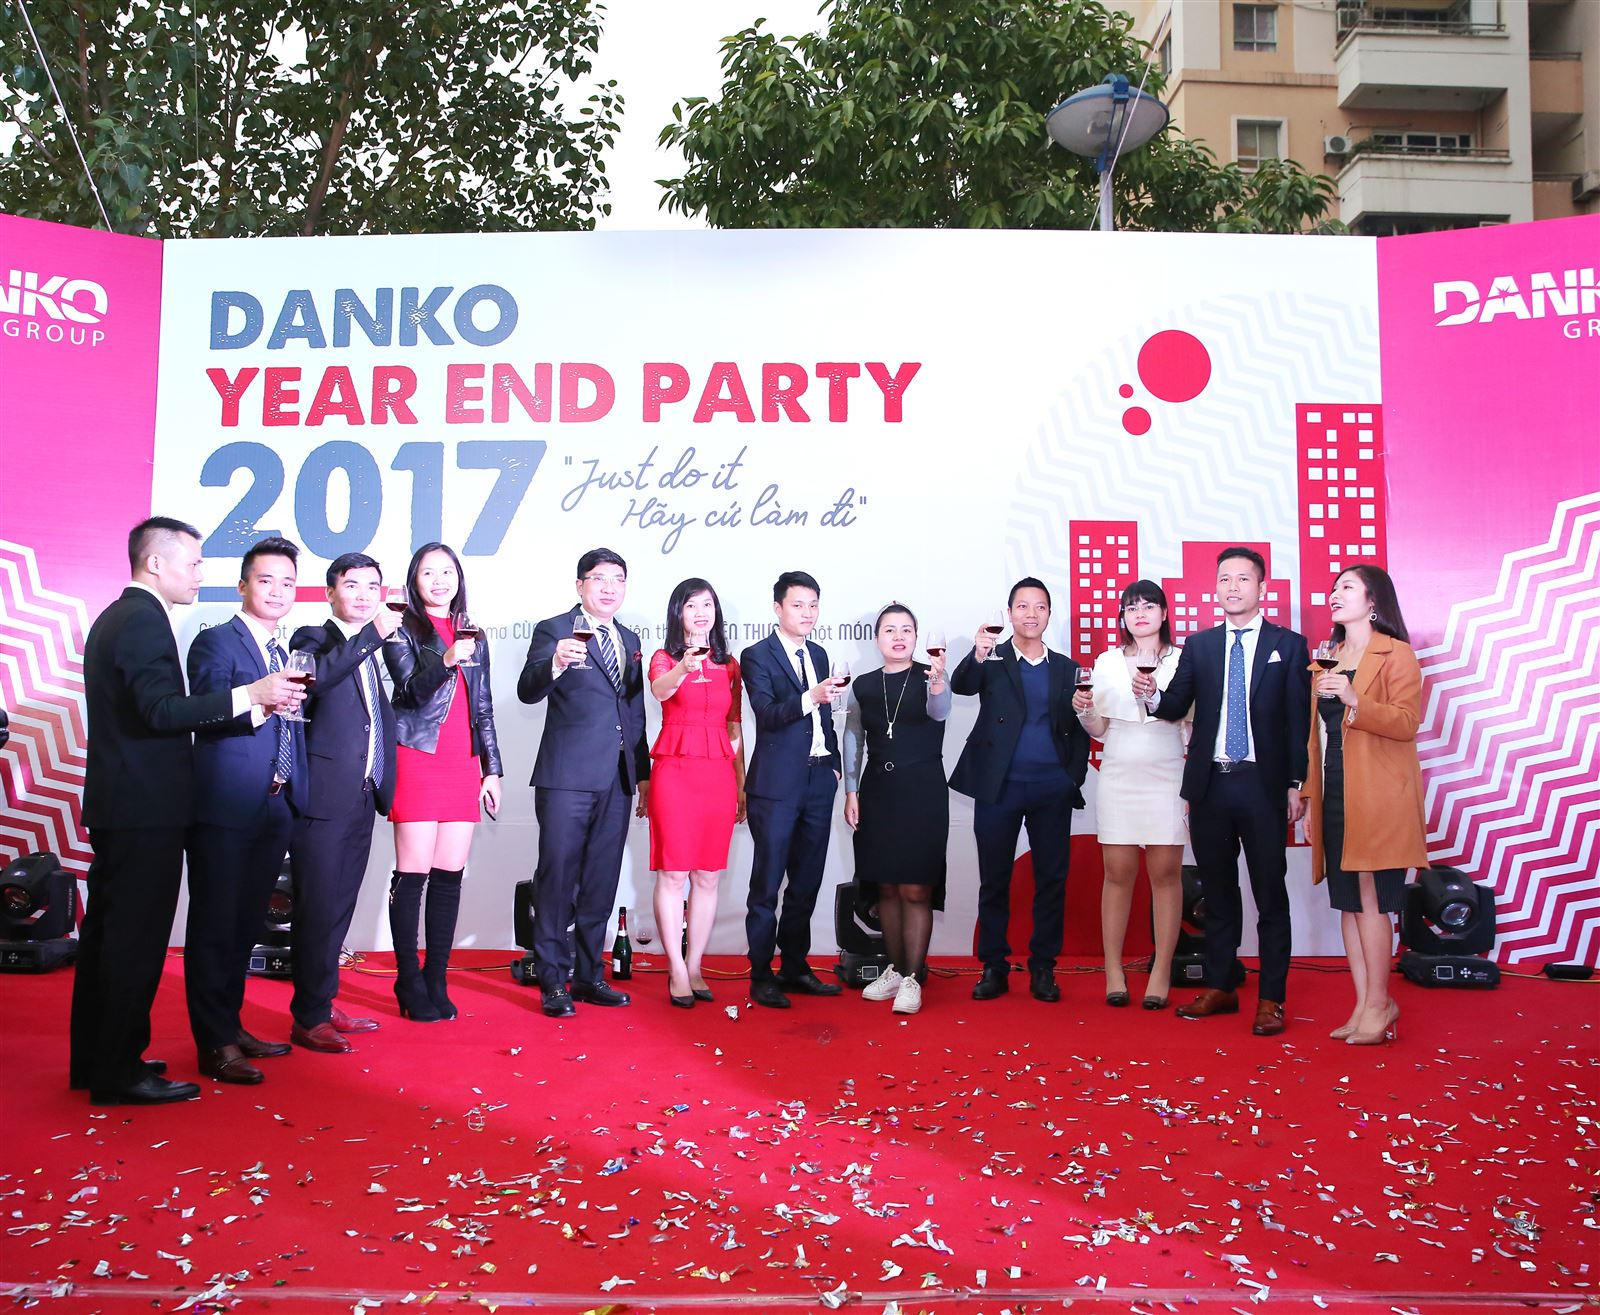 Danko Year End Party